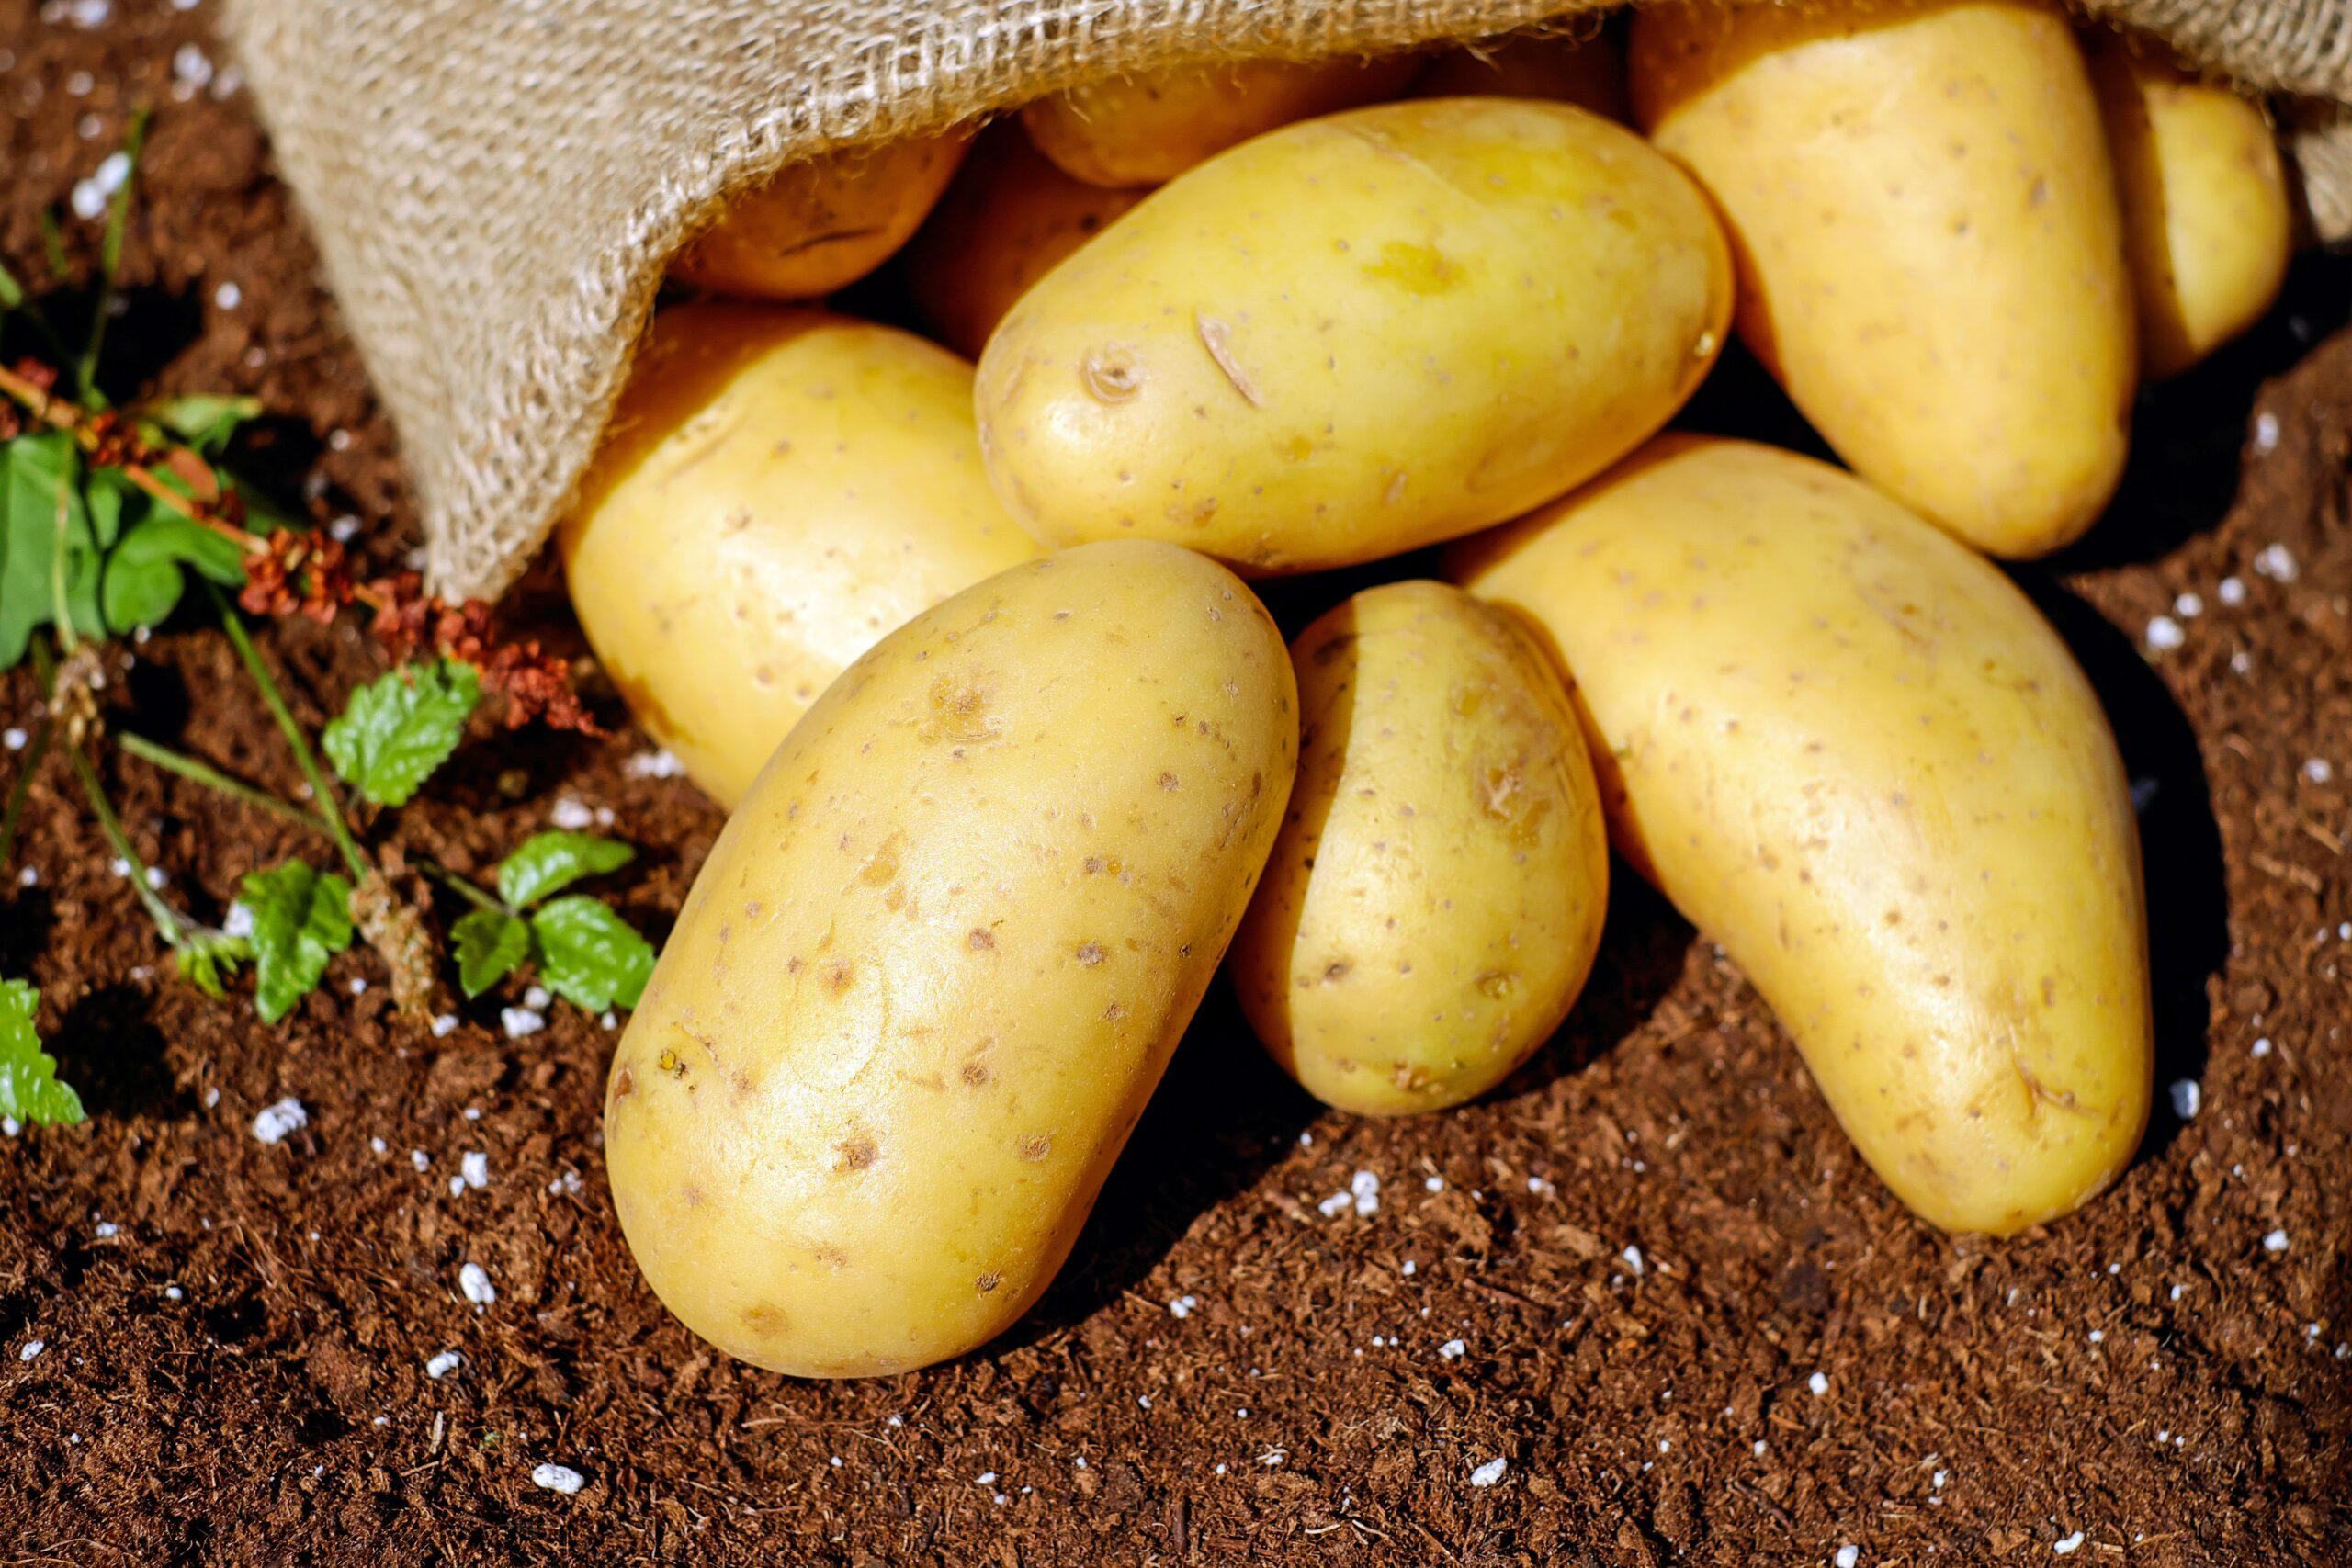 Some potatoes and cereal contain cadmium